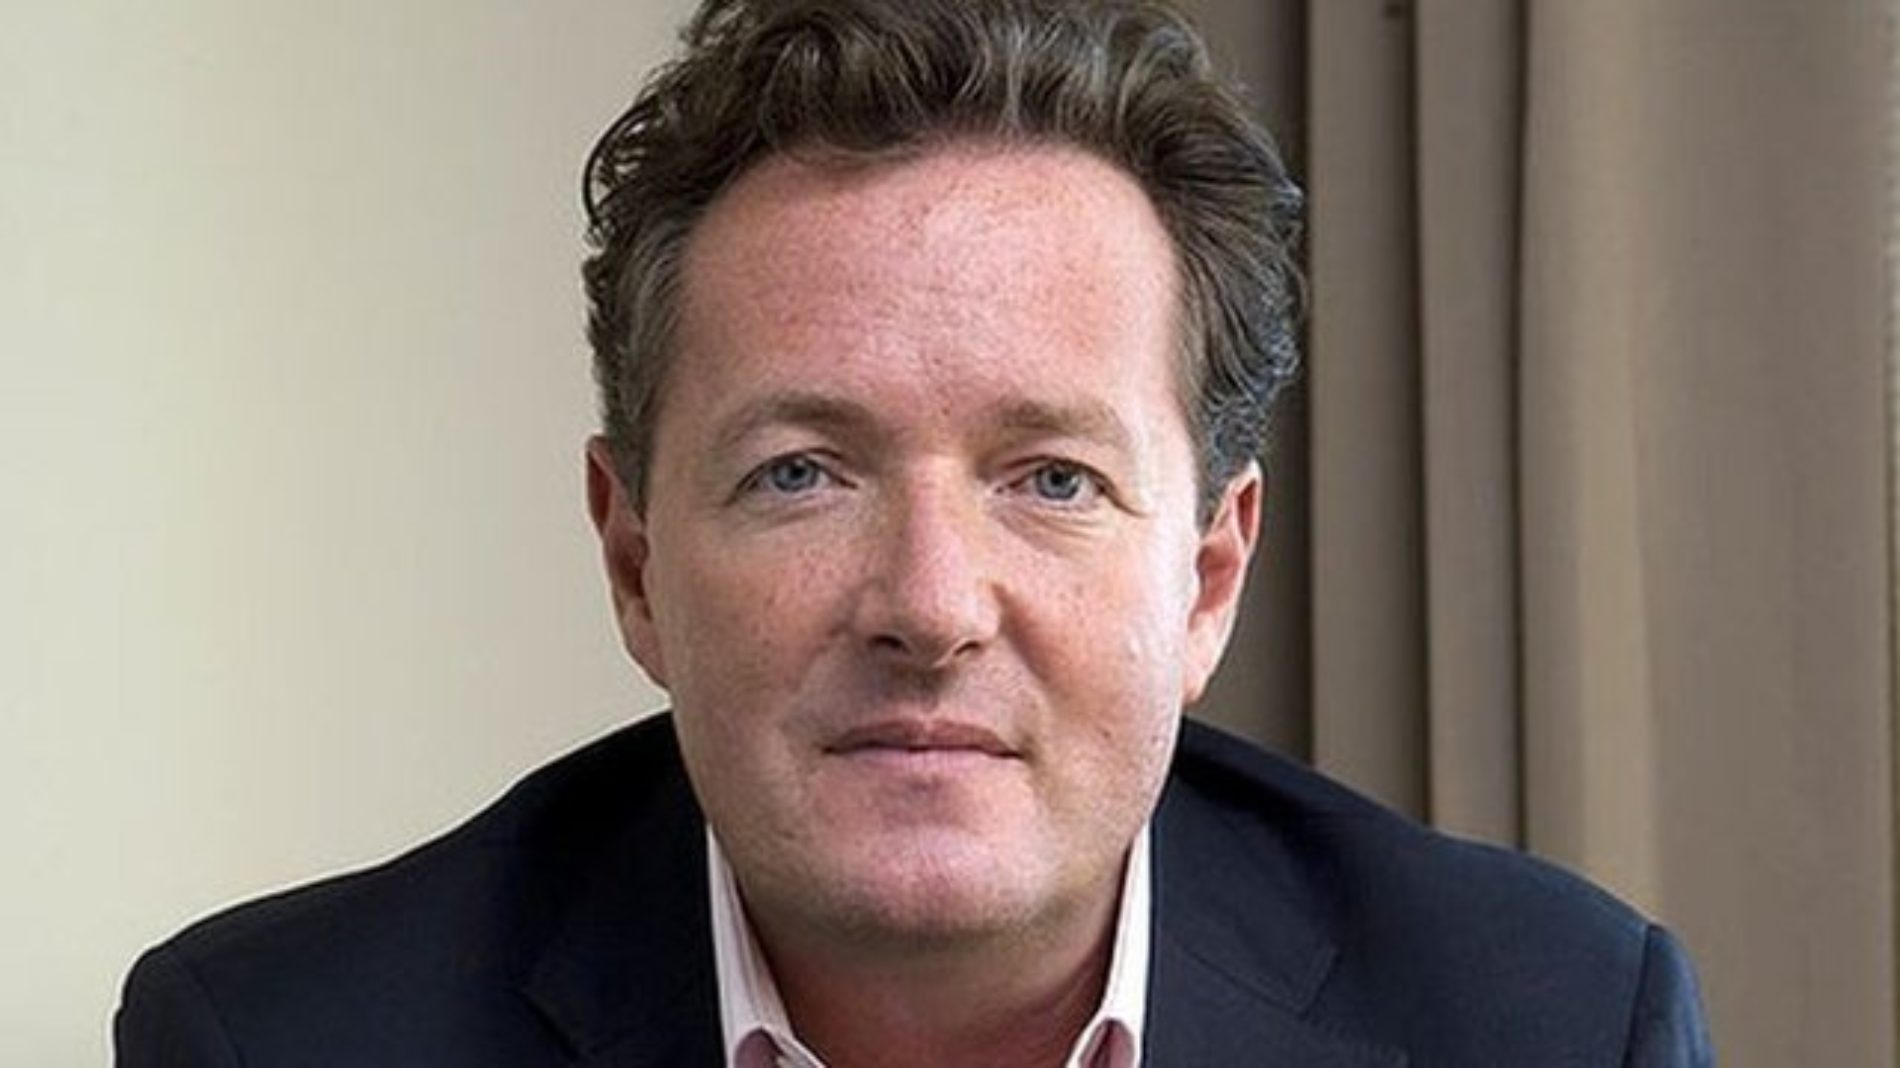 Piers Morgan blasts the Dolce and Gabbana boycott, says it's another word for bullying